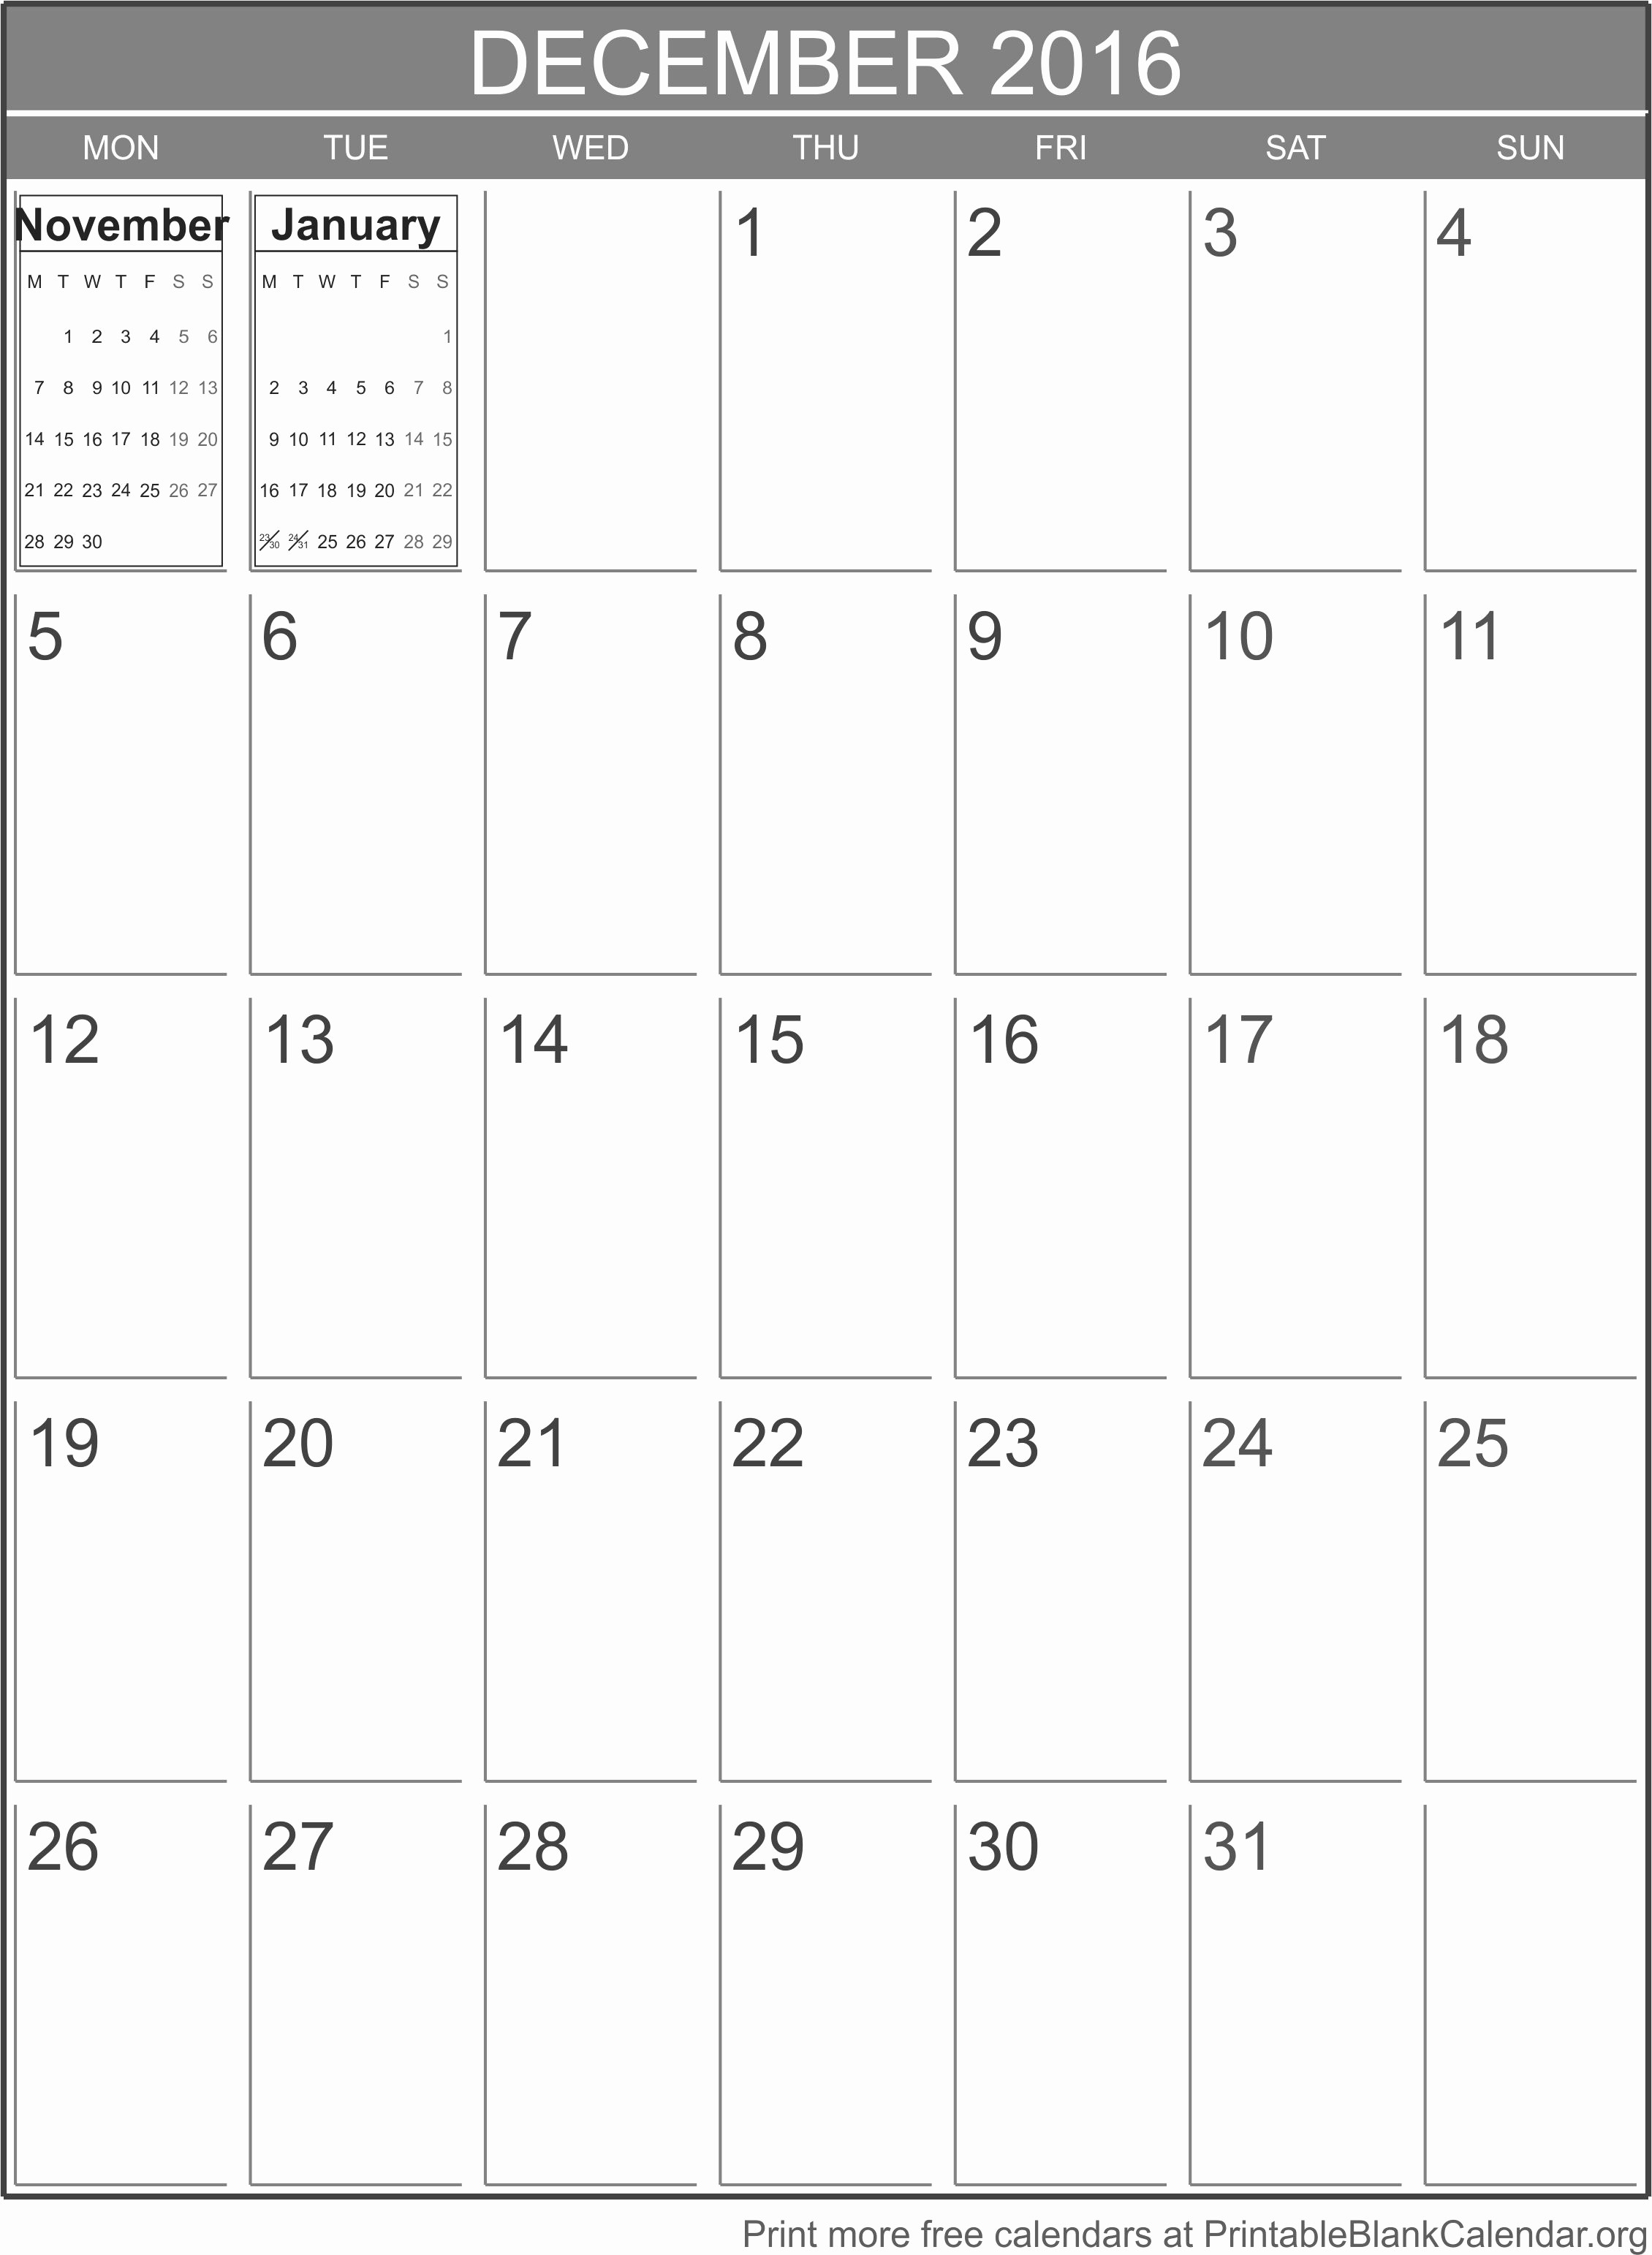 Blank December Calendar 2016 Printable Unique Printable Calendar December 2016 Printable Blank